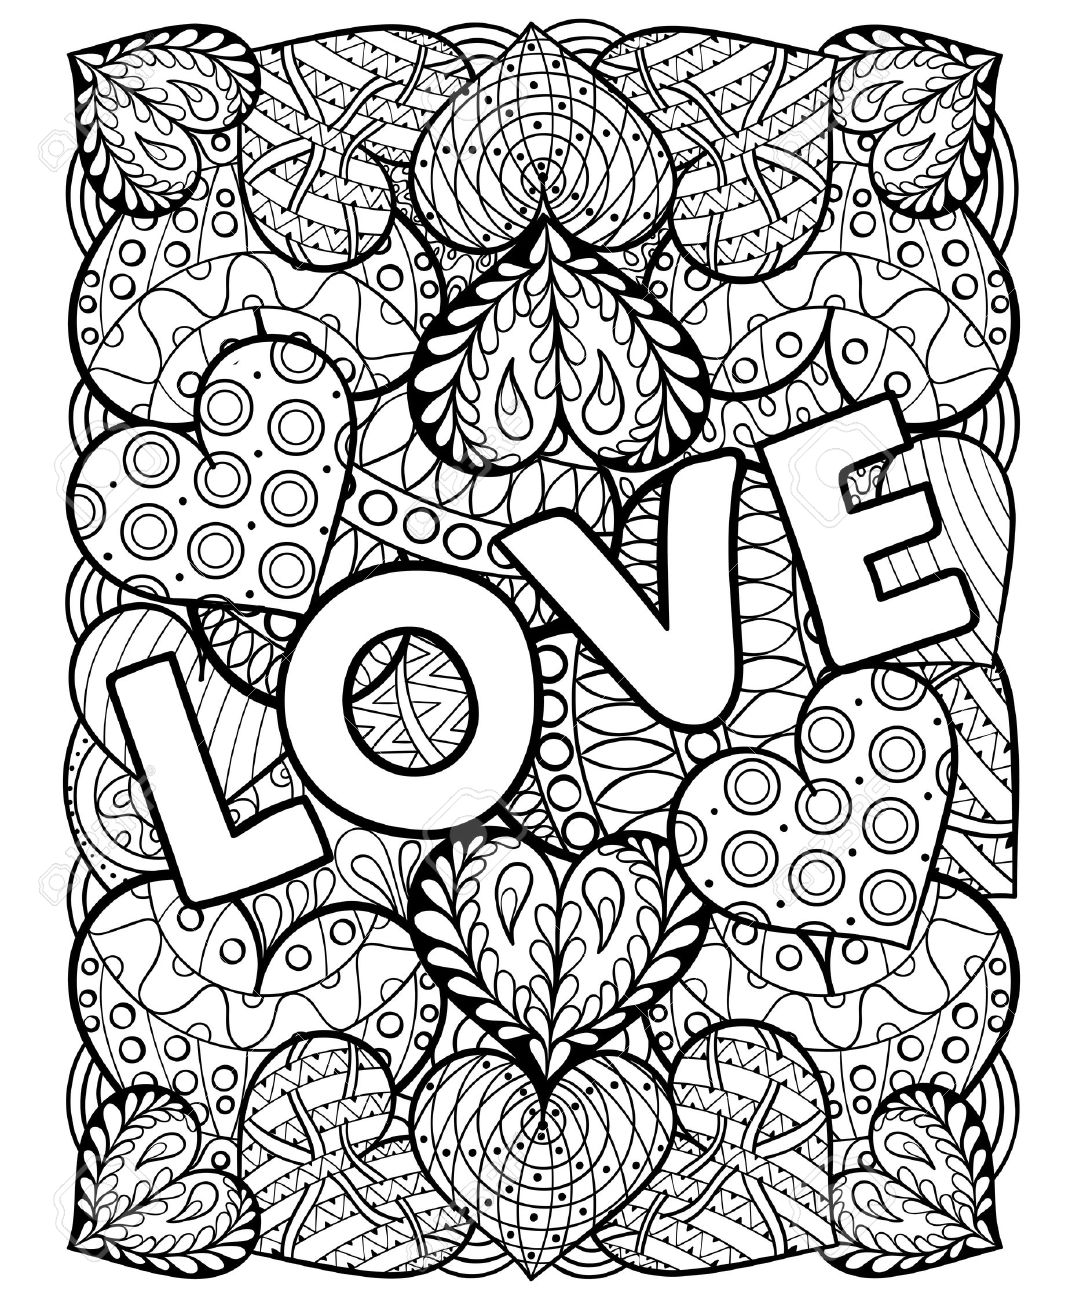 Hand drawn St. Valentine's day artistically ornamental patterned hearts with love in doodle, zentangle tribal style for adult coloring pages, tattoo, t-shirt or prints. Vector illustration A4 size. - 51456685